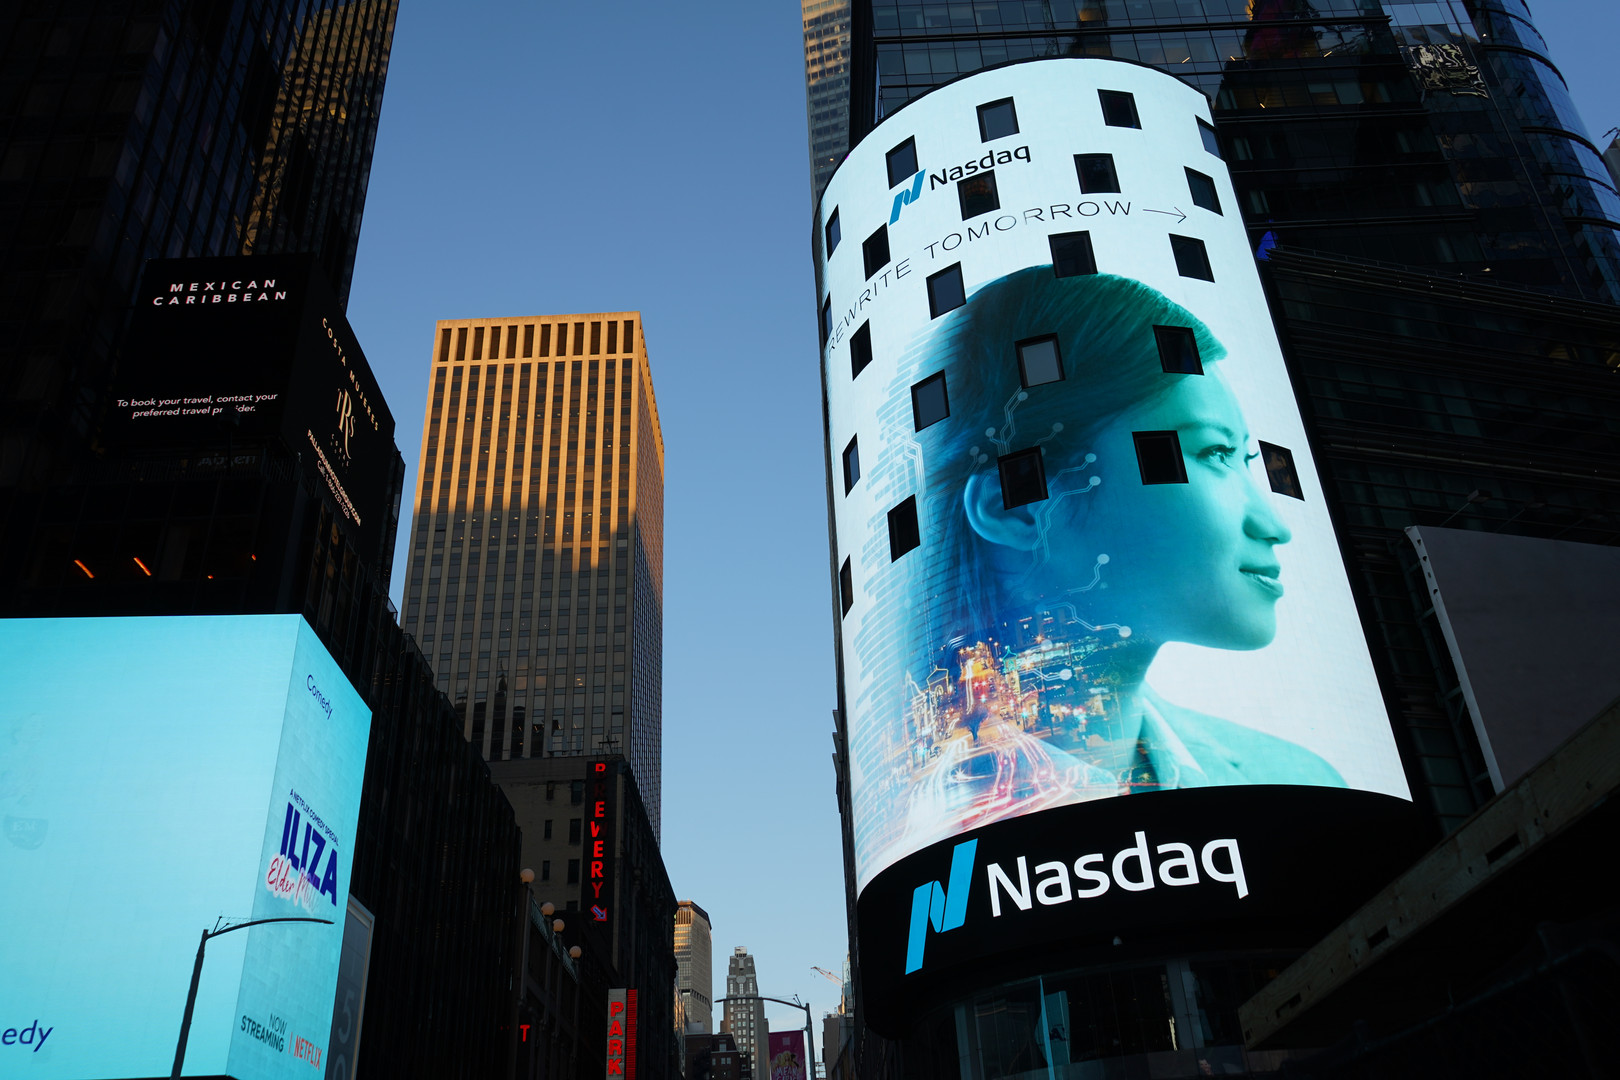 Times Square - Global Media Center